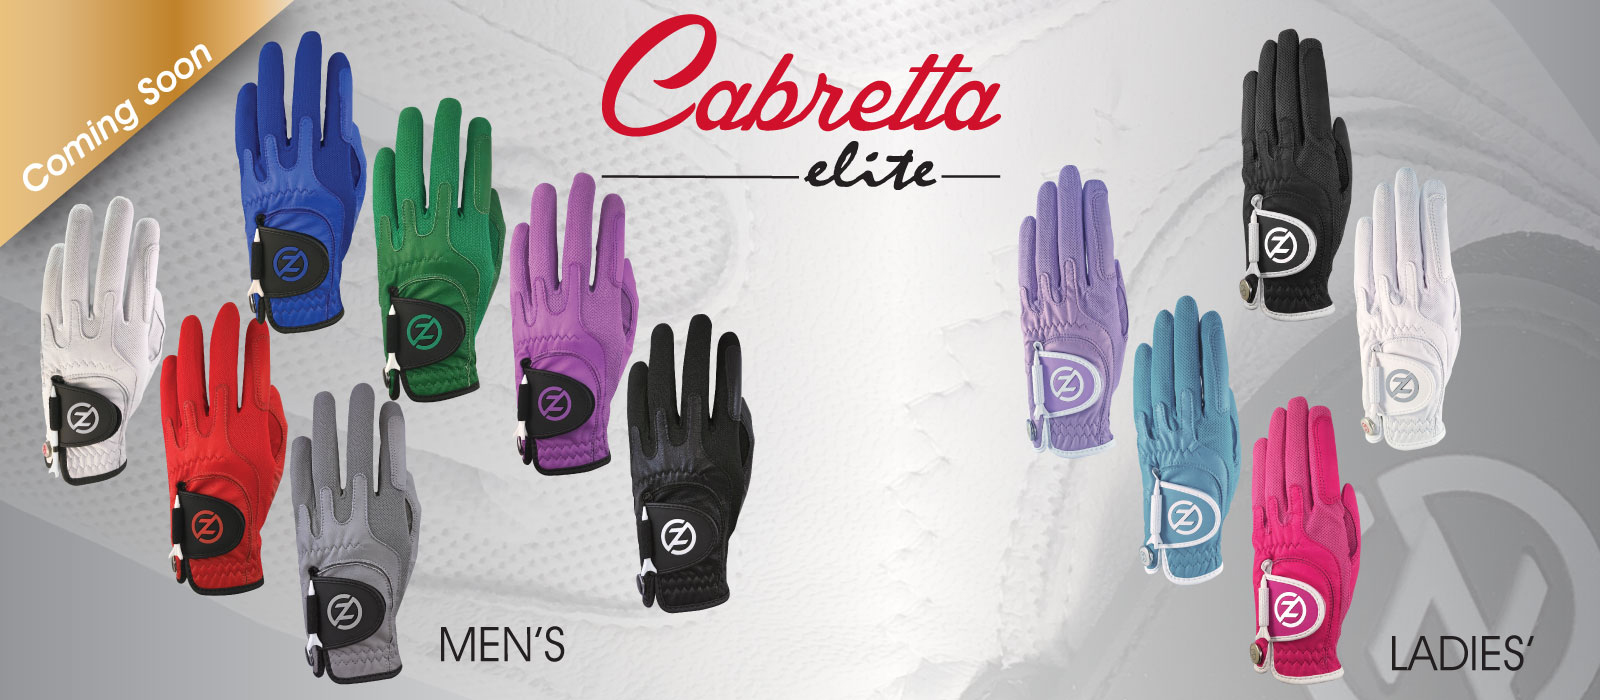 New Cabretta Elite Gloves